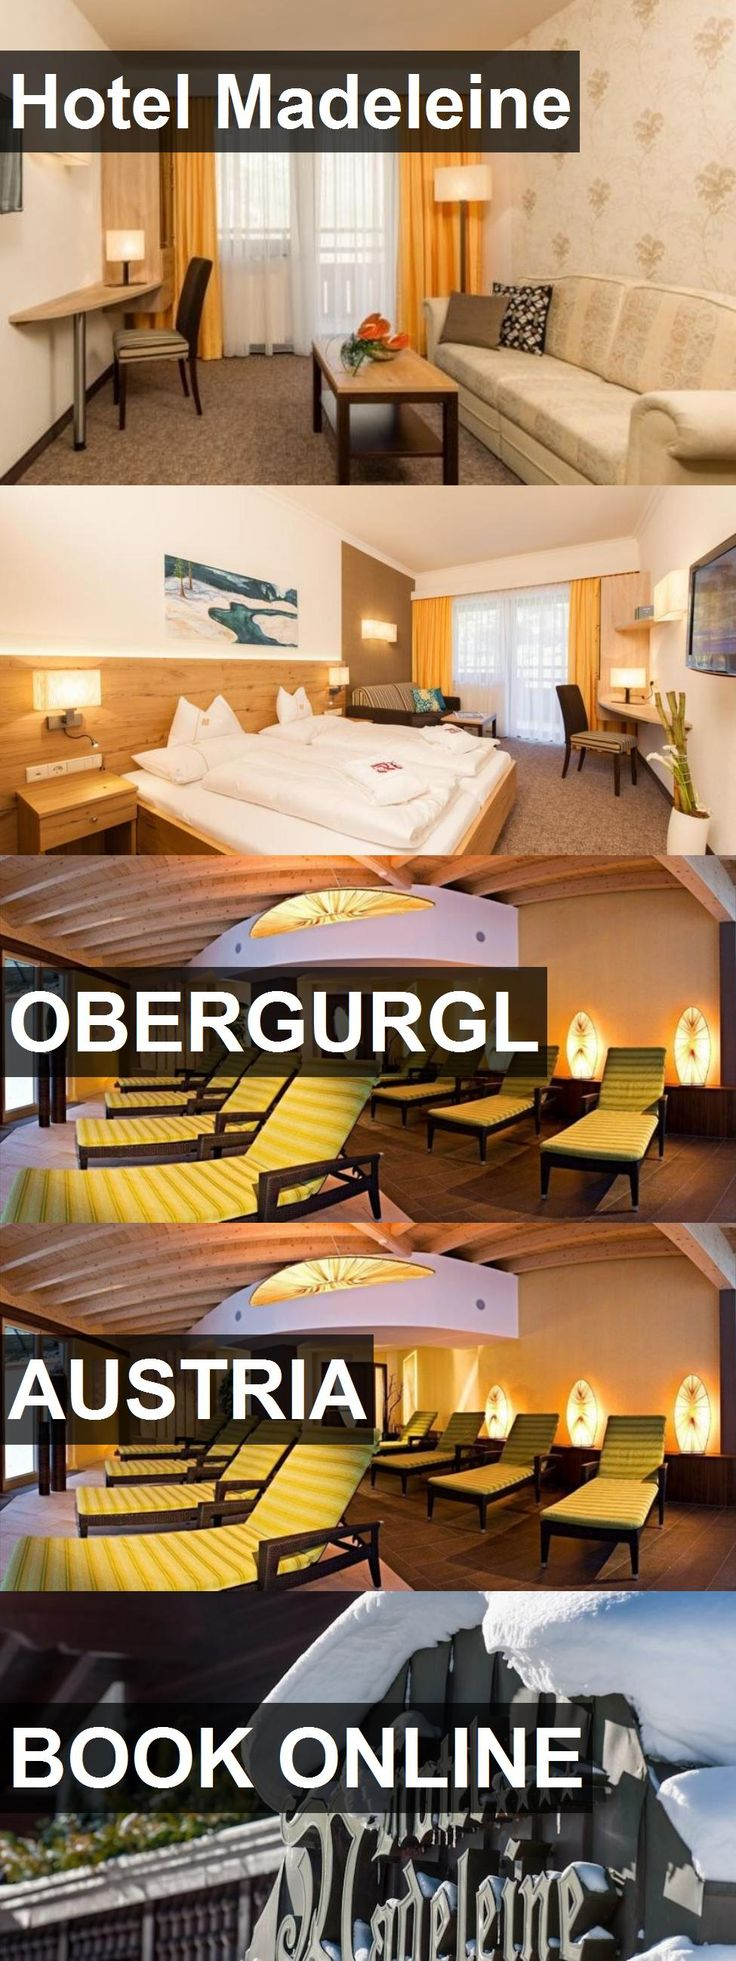 Hotel Hotel Madeleine in Obergurgl, Austria. For more information, photos, reviews and best prices please follow the link. #Austria #Obergurgl #HotelMadeleine #hotel #travel #vacation